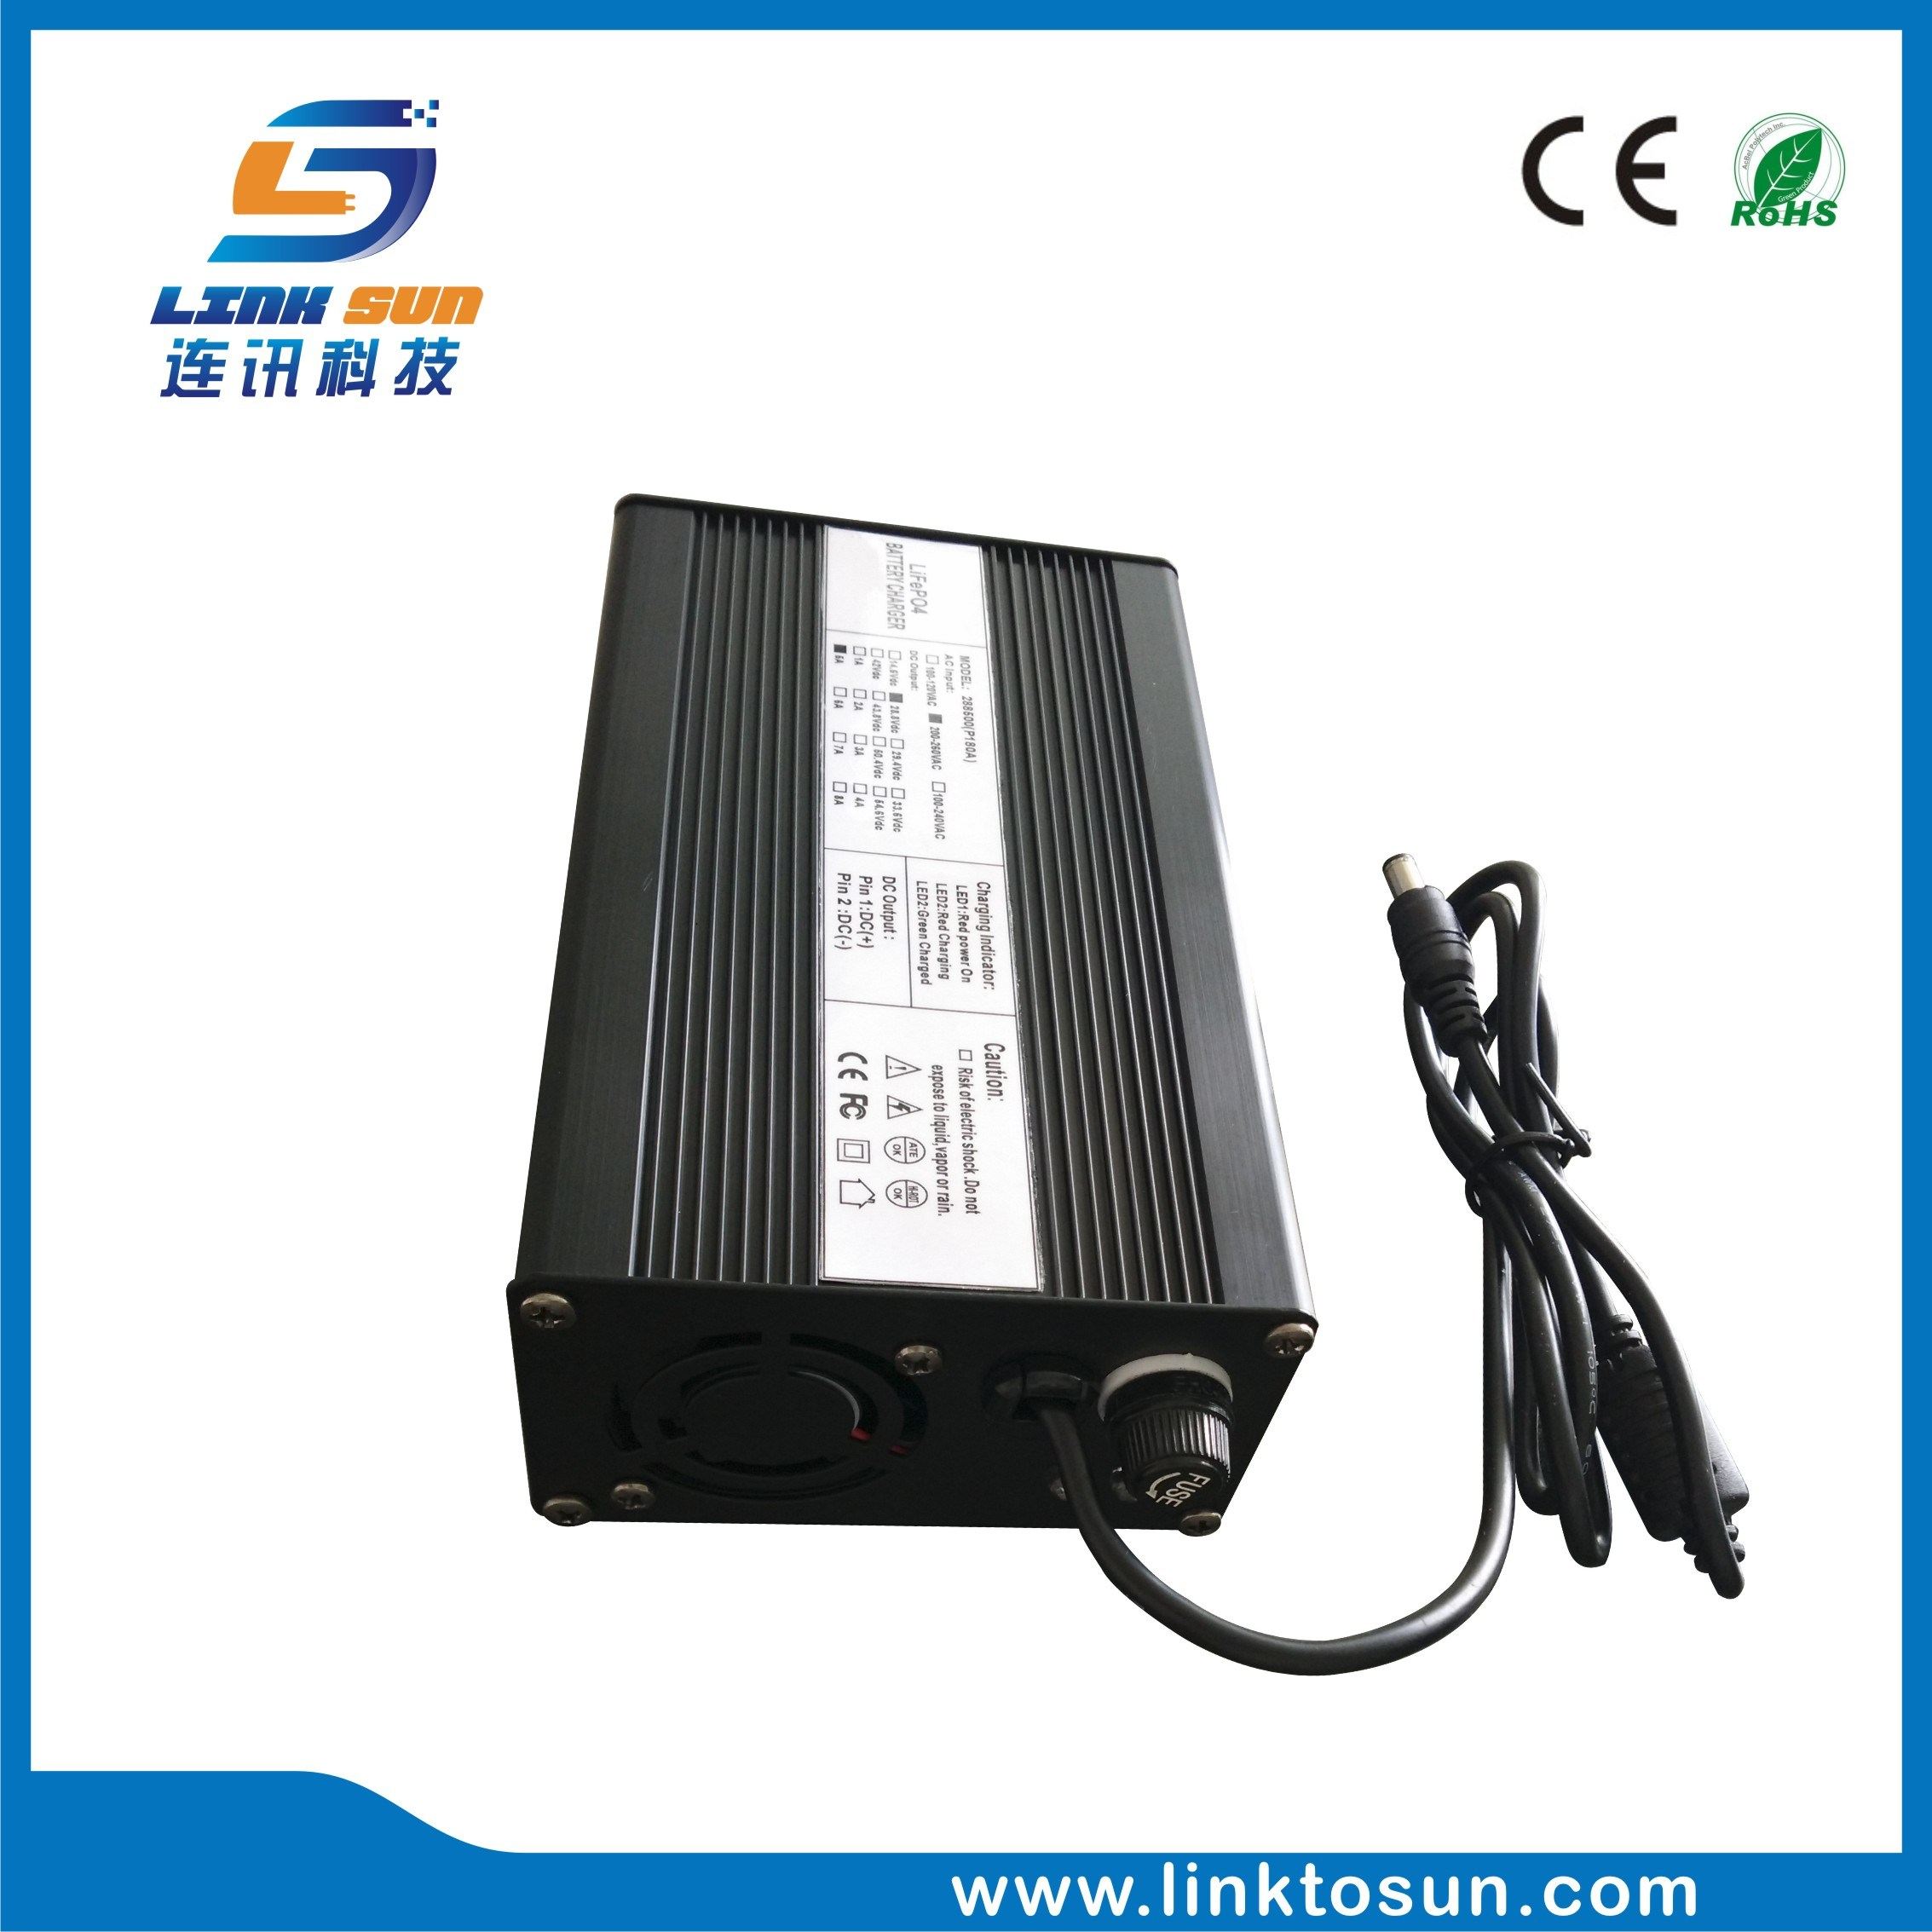 China Factory Supply 5s 21v 7a 180w Lithium Battery Charger 1 Slot Baterai Vape